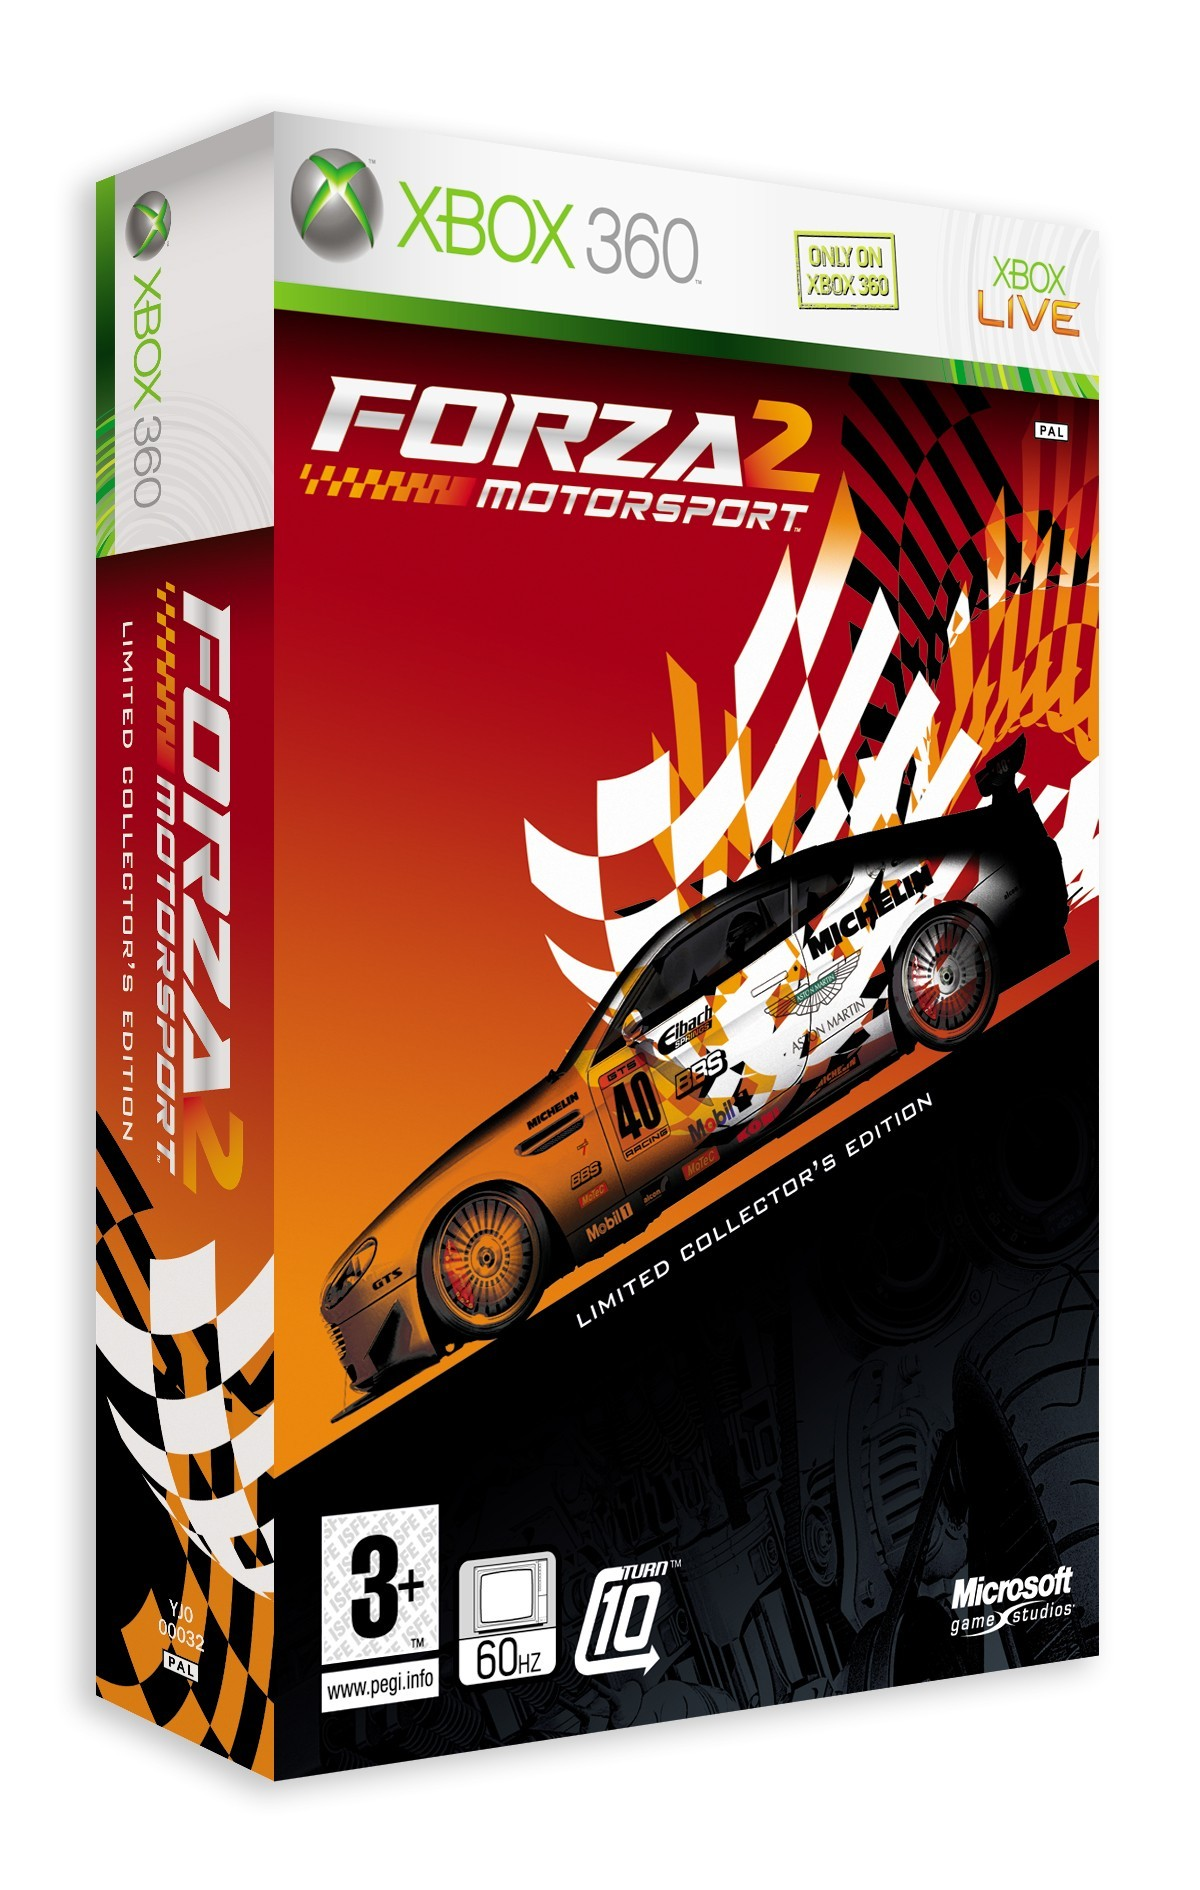 Forza Motorsport 2/Limited Collector's Edition